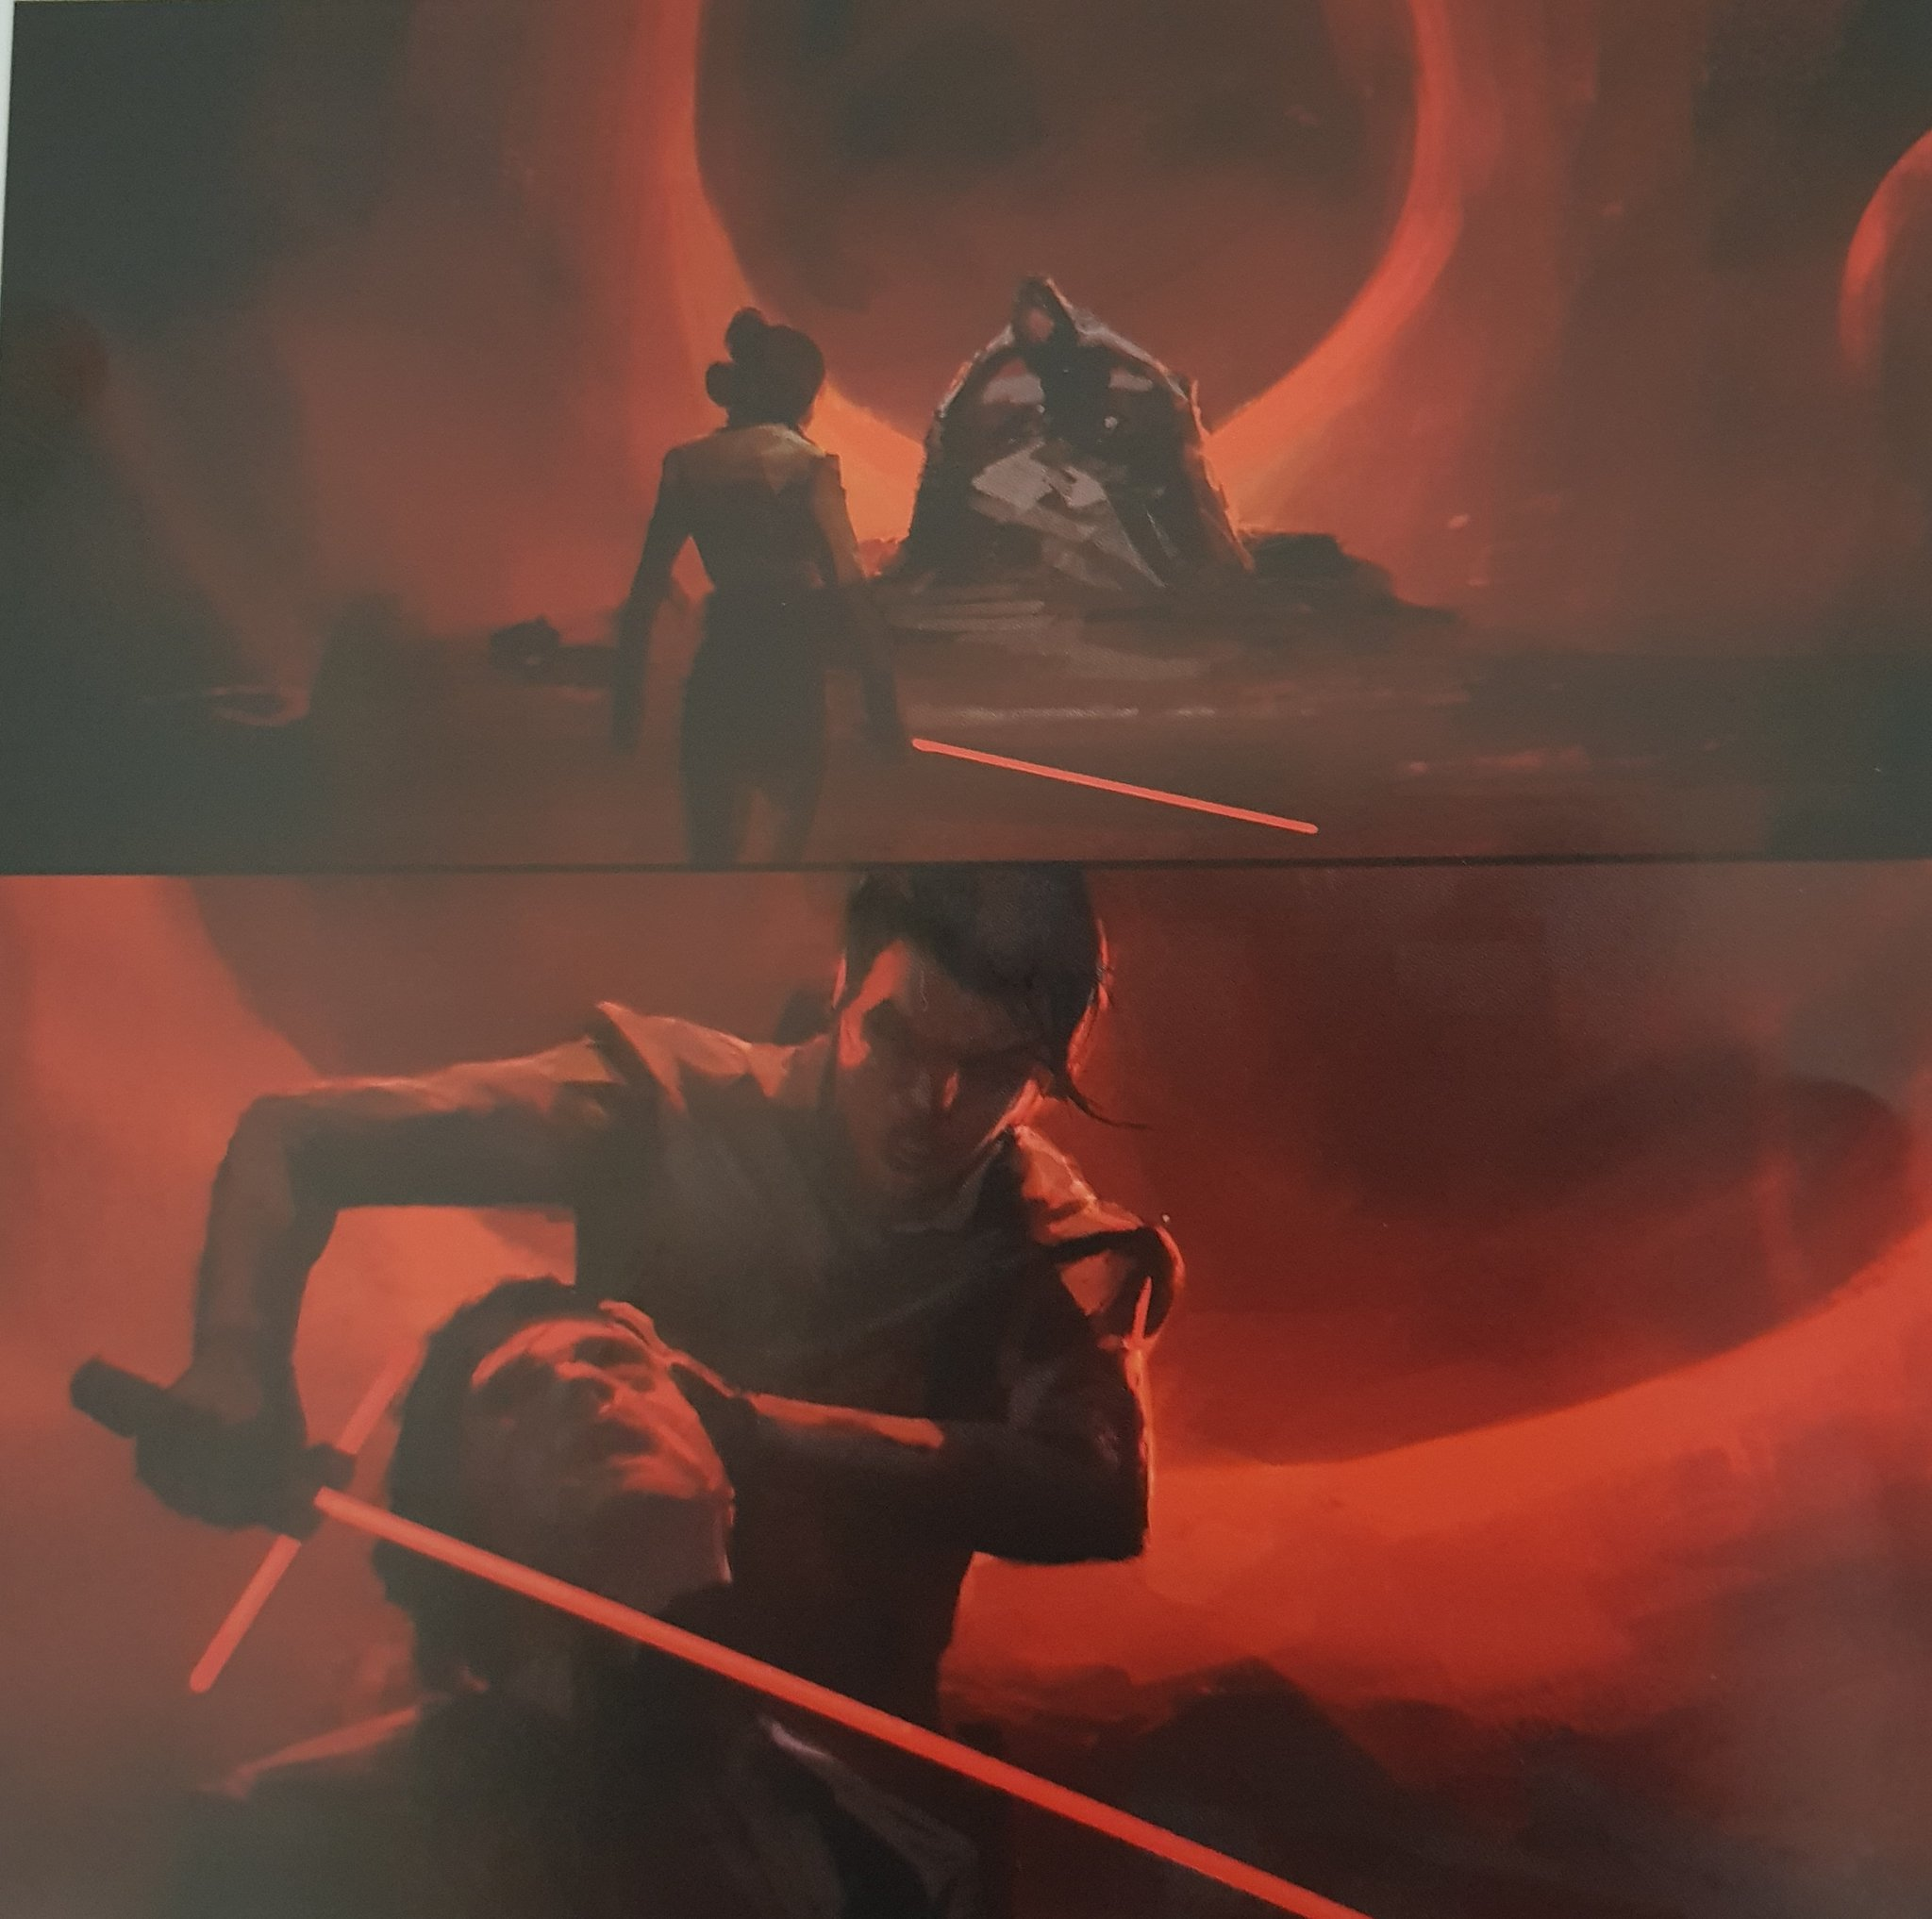 Dark Rey Almost Kills Kylo Ren In Cut Star Wars The Rise Of Skywalker Scene